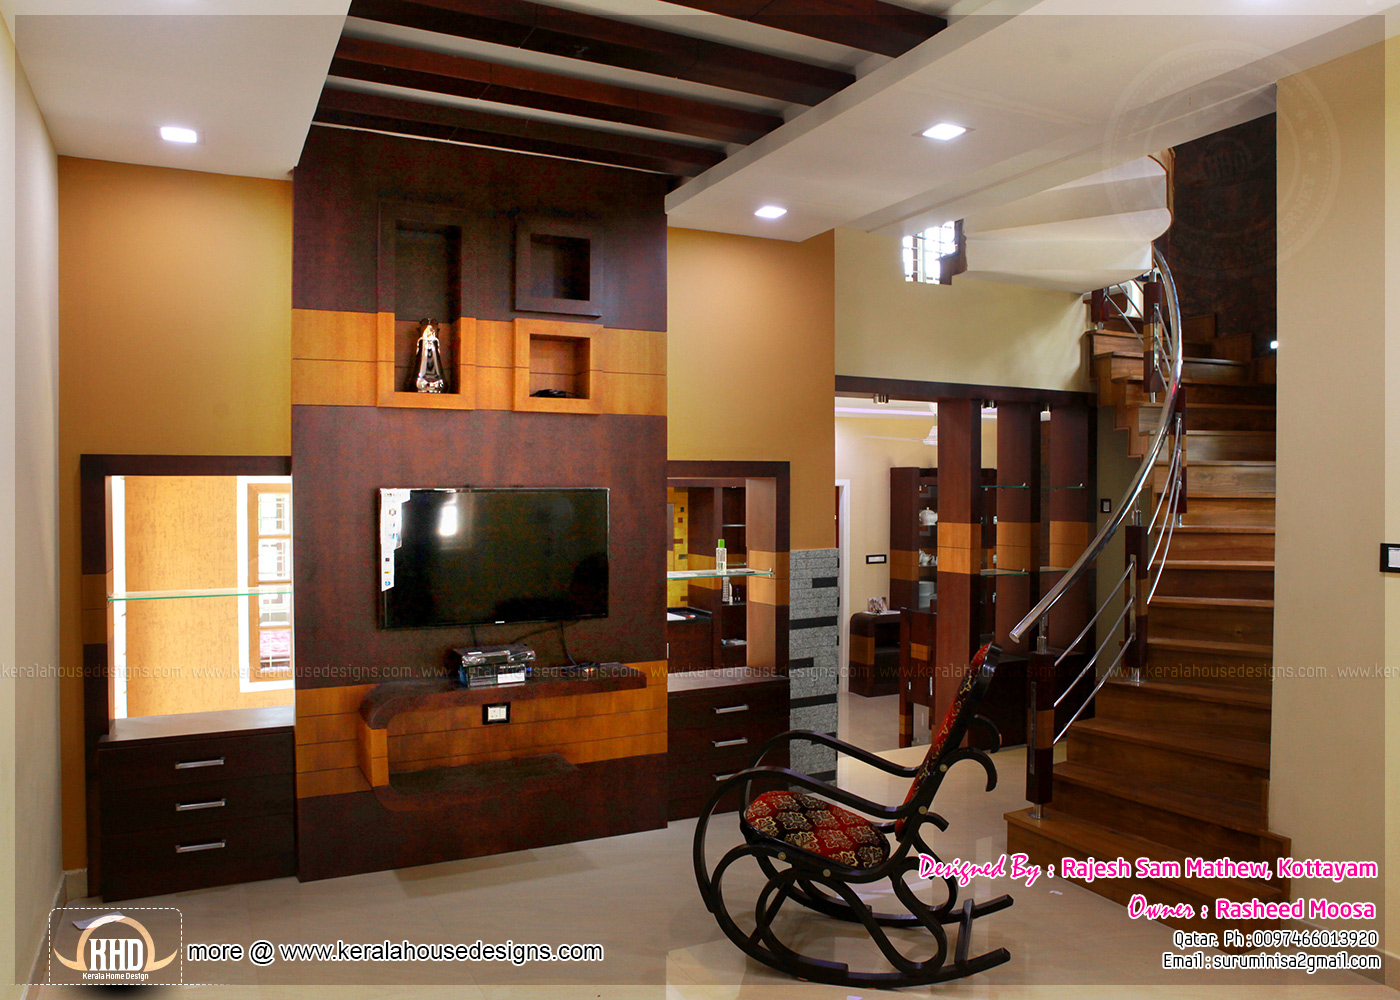 Kerala interior design with photos kerala home design for Interior designs in kerala